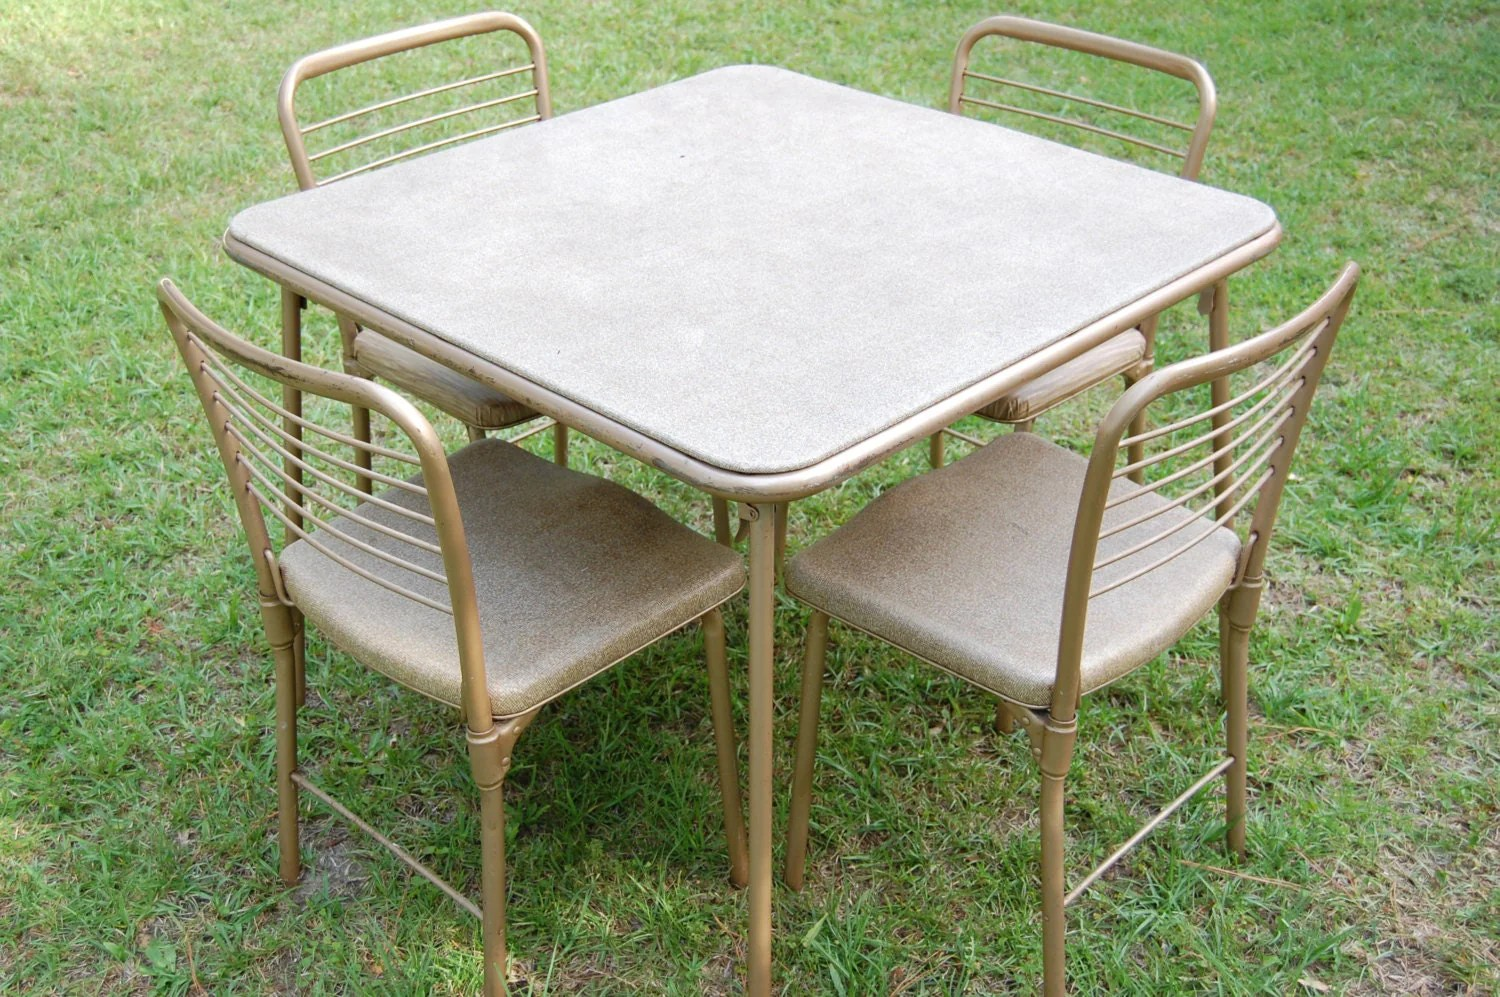 vintage table and chairs chair for writing desk cosco 1950s metal gambling gaming